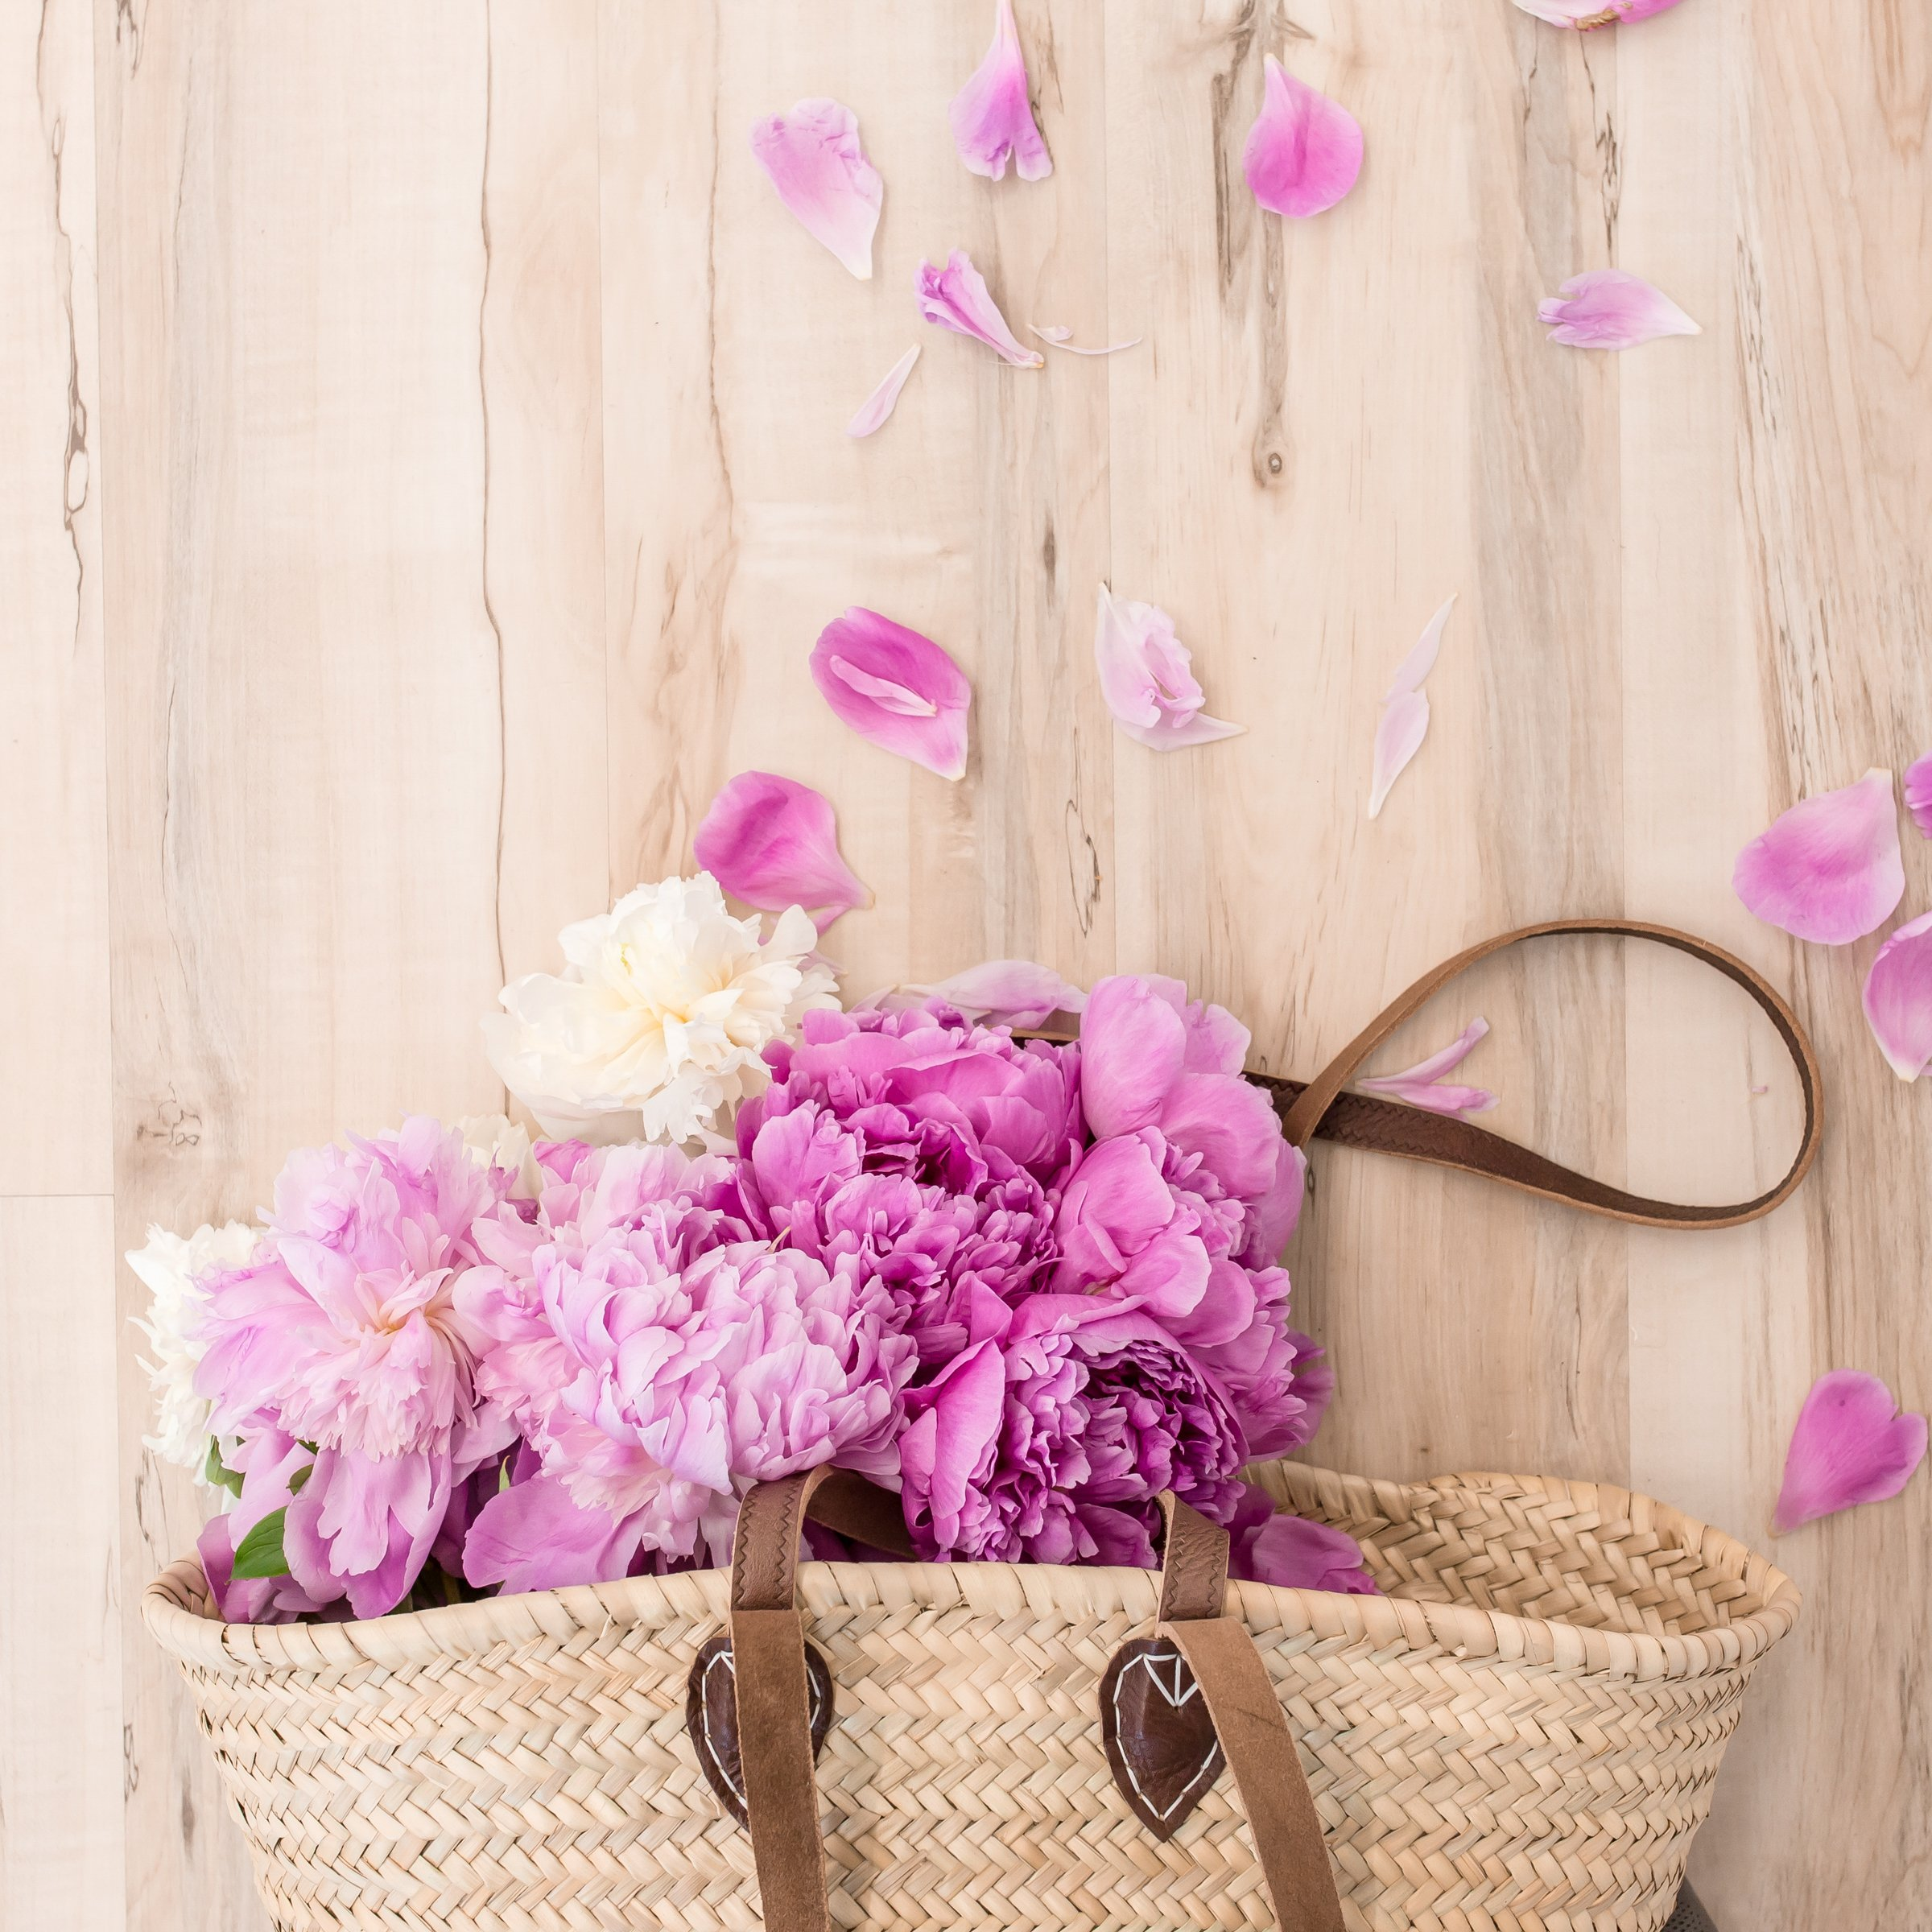 haute-stock-photography-all-the-pink-final-18